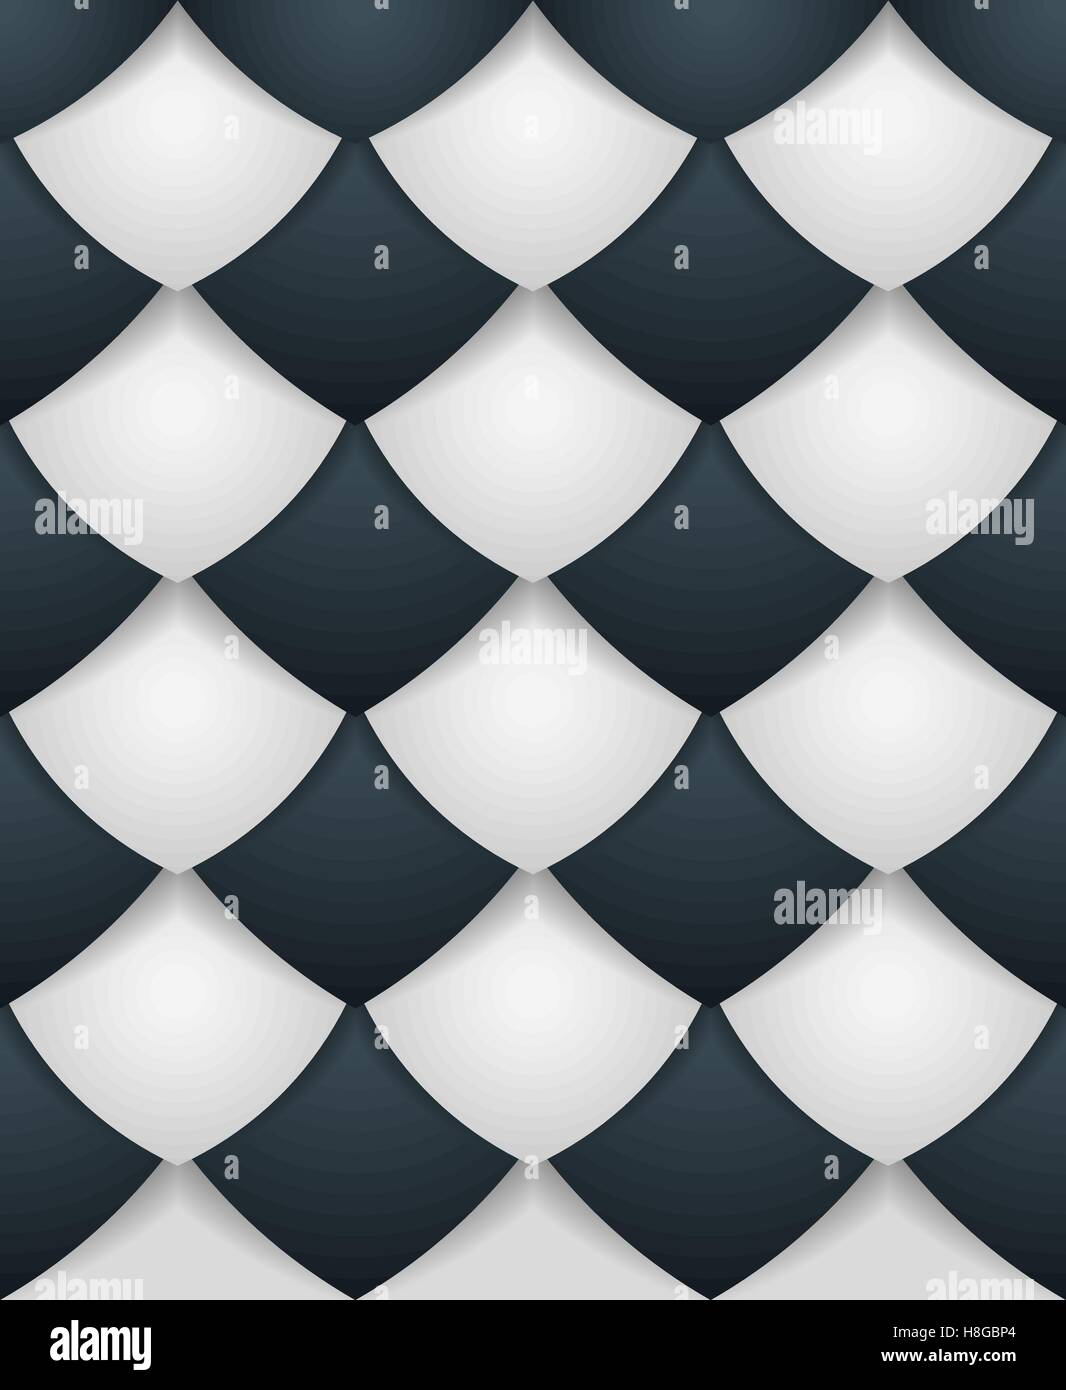 Abstract layered background. Vector illustration Eps 10 - Stock Vector